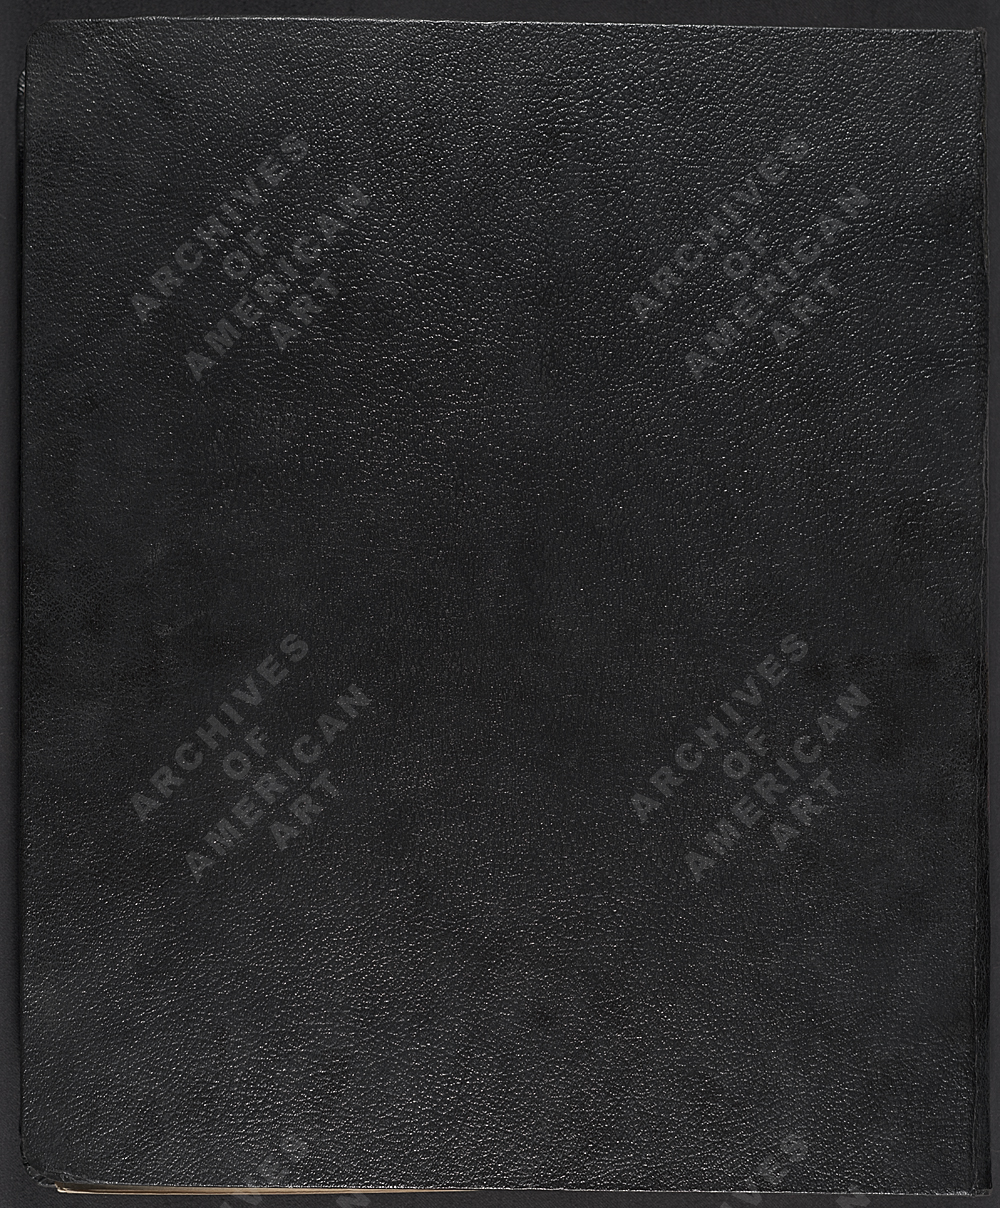 Image for cover back 2